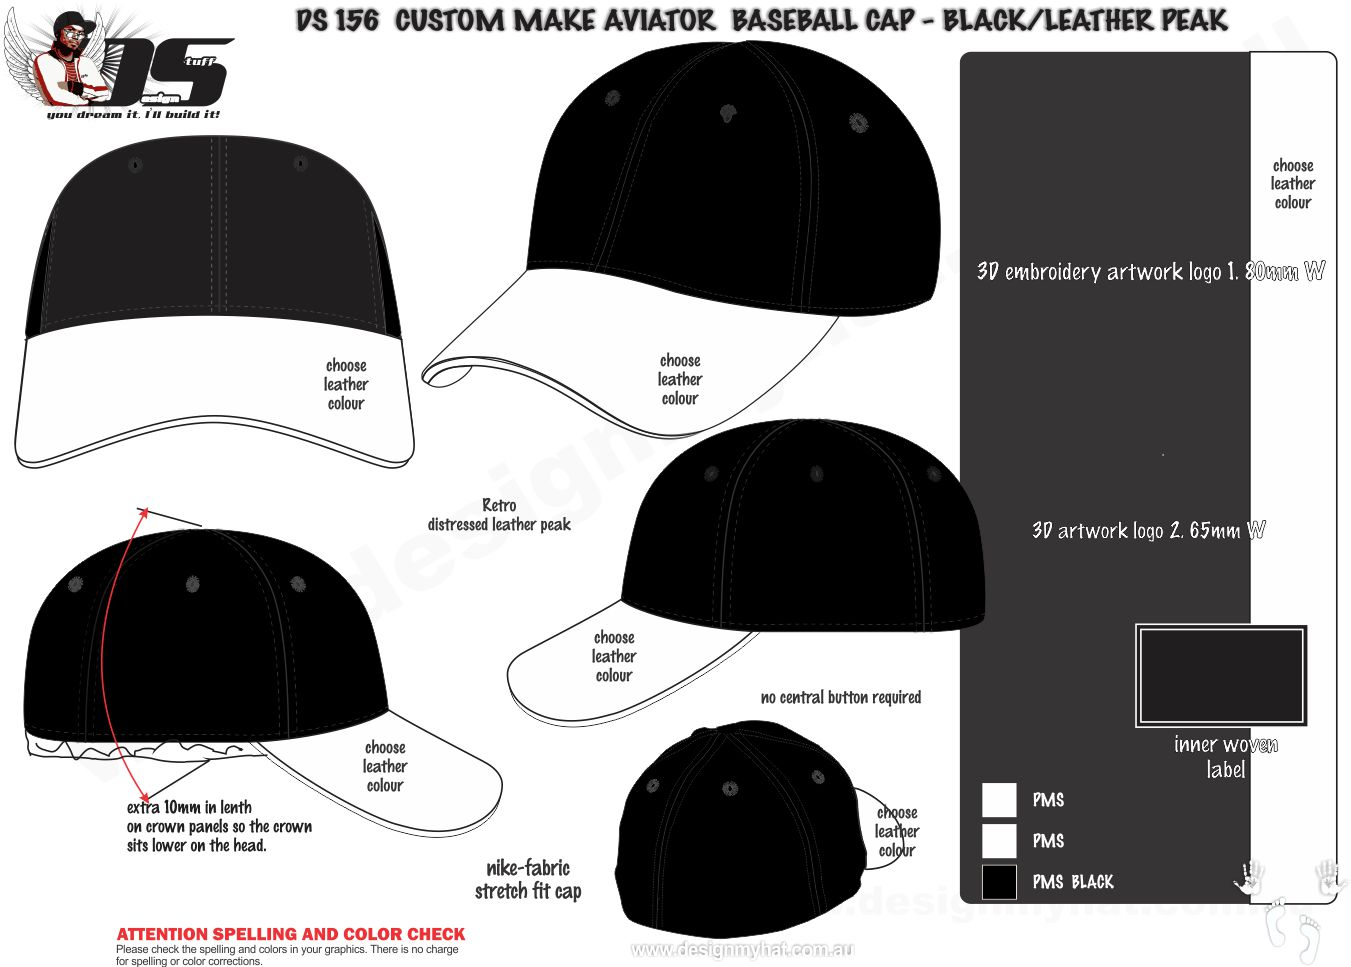 14 baseball cap design template images baseball cap vector template baseball hat design. Black Bedroom Furniture Sets. Home Design Ideas